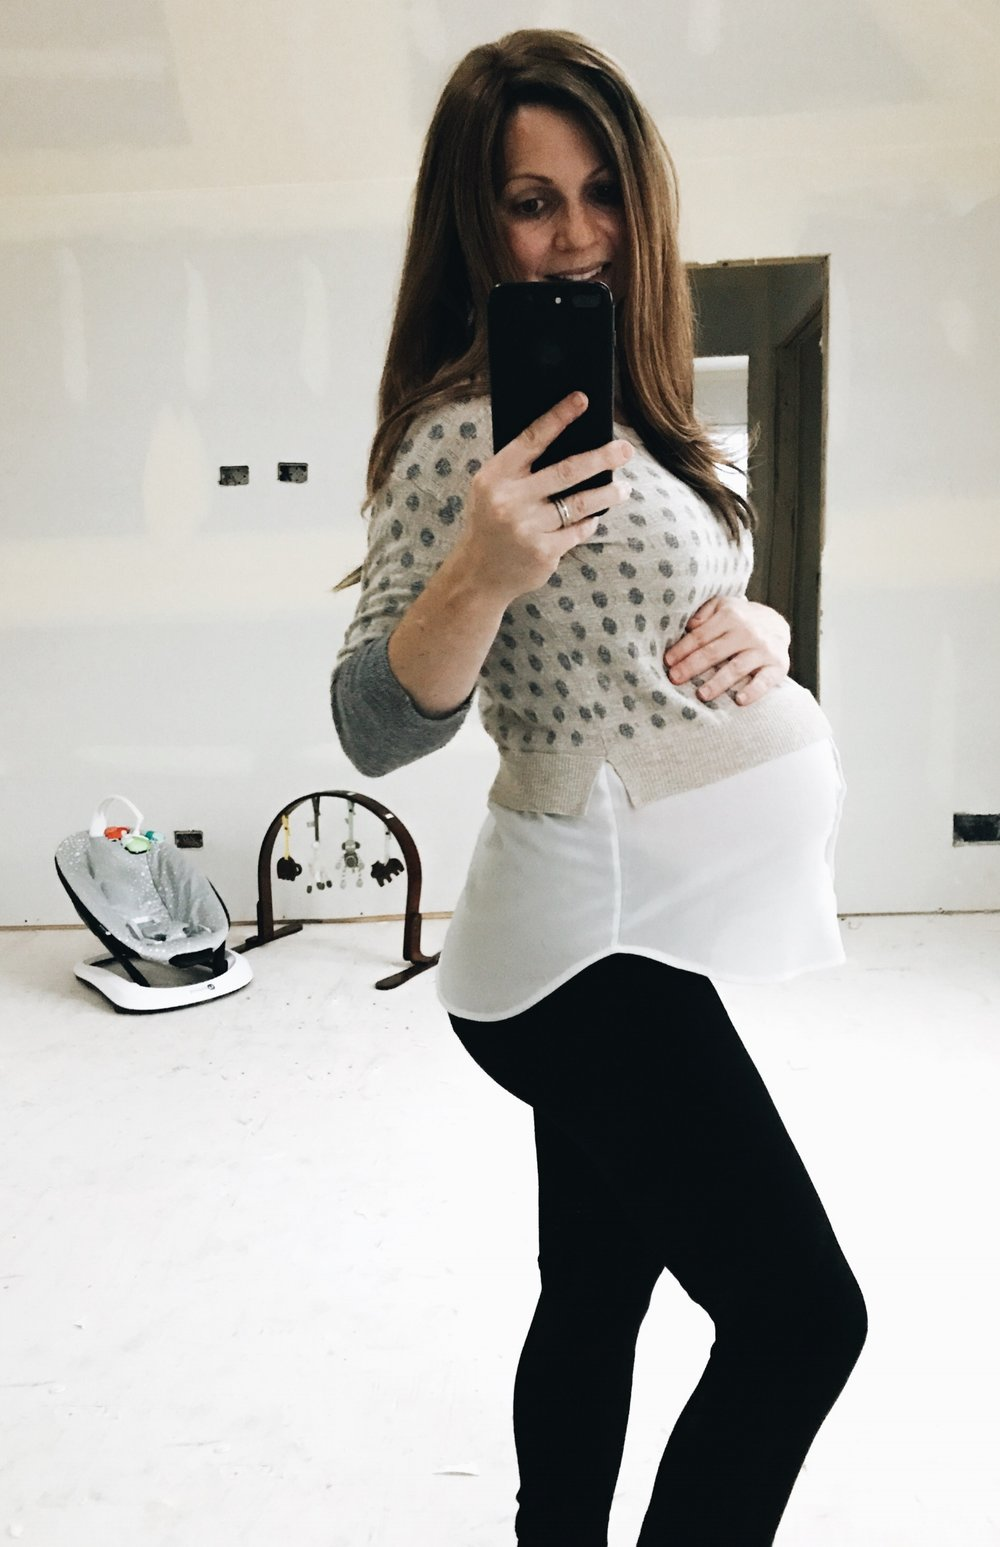 36 Week Bumpdate. What it's like to be 8 months pregnant. #pregnancy